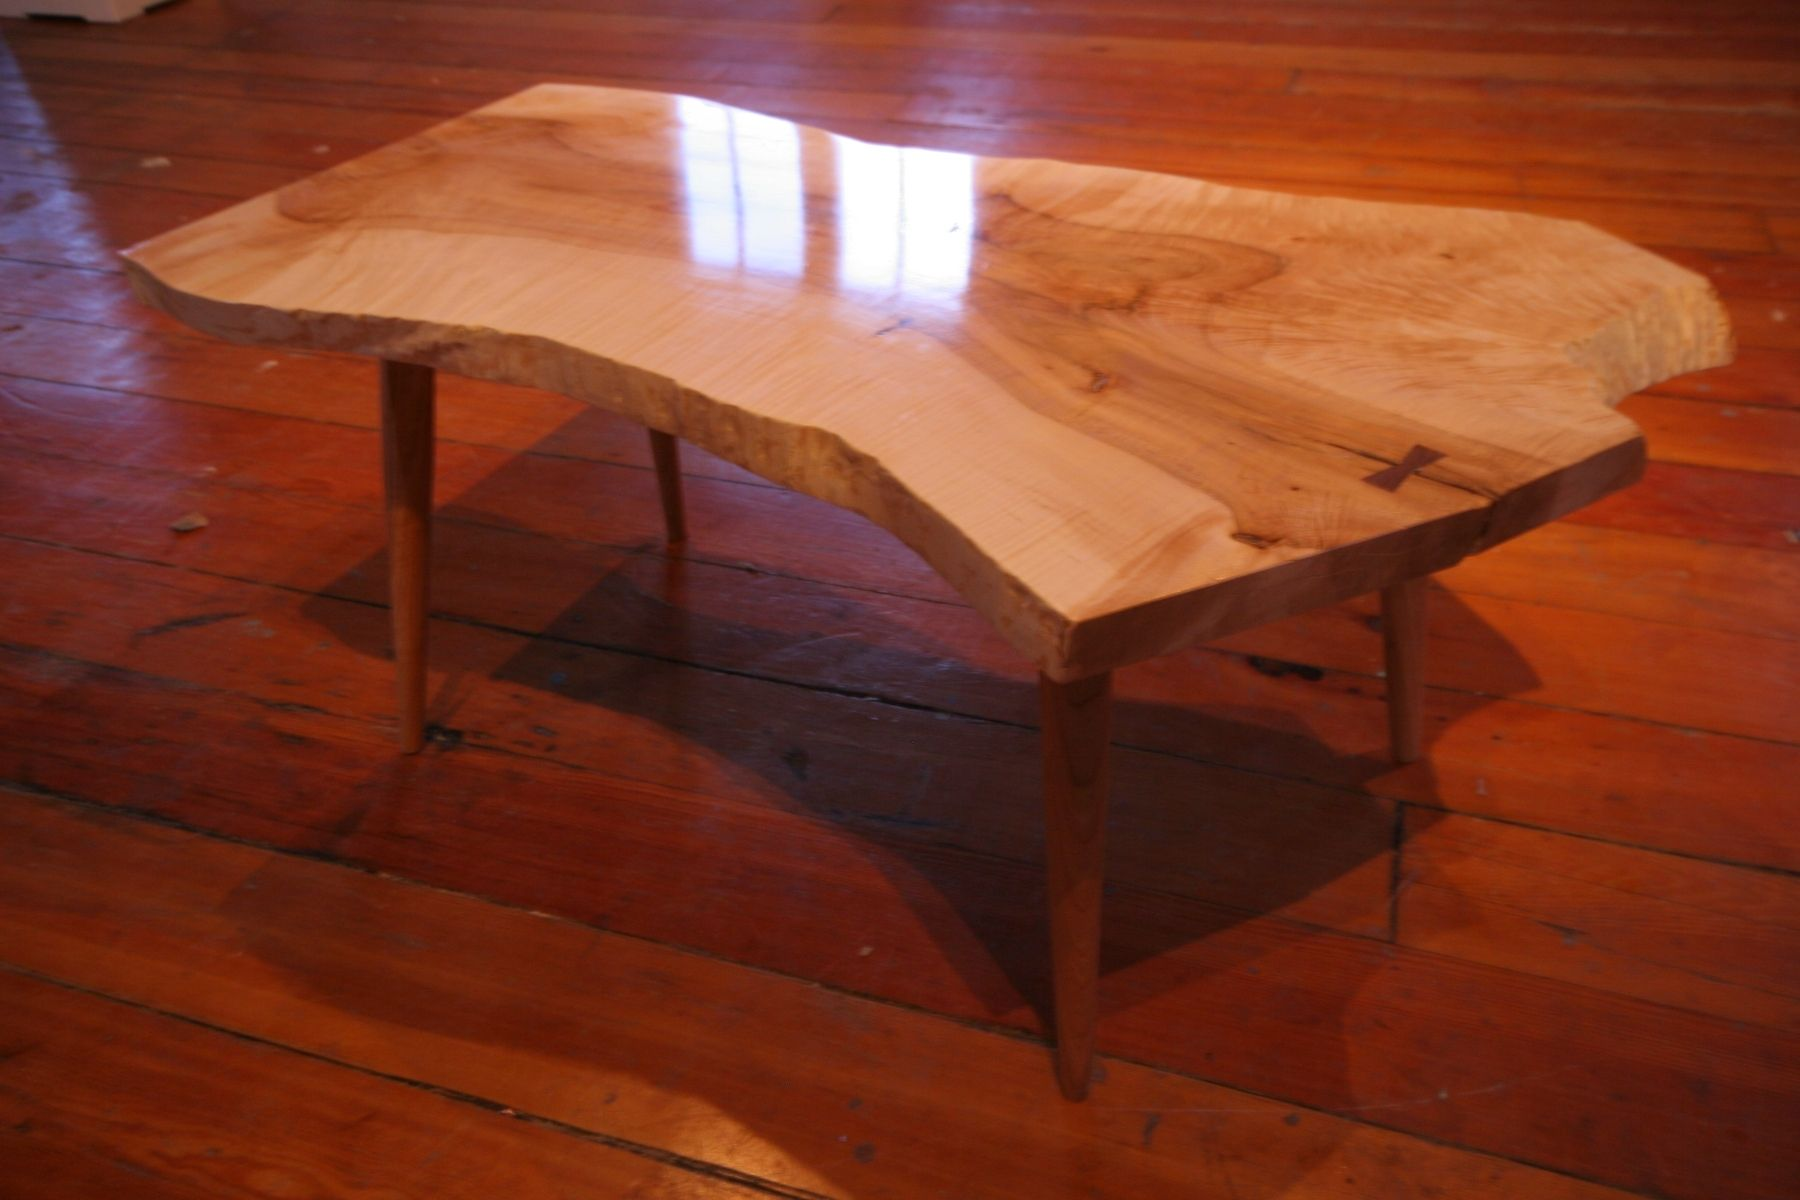 Hand crafted slab coffee tables by dovetail furniture for Dovetail furniture